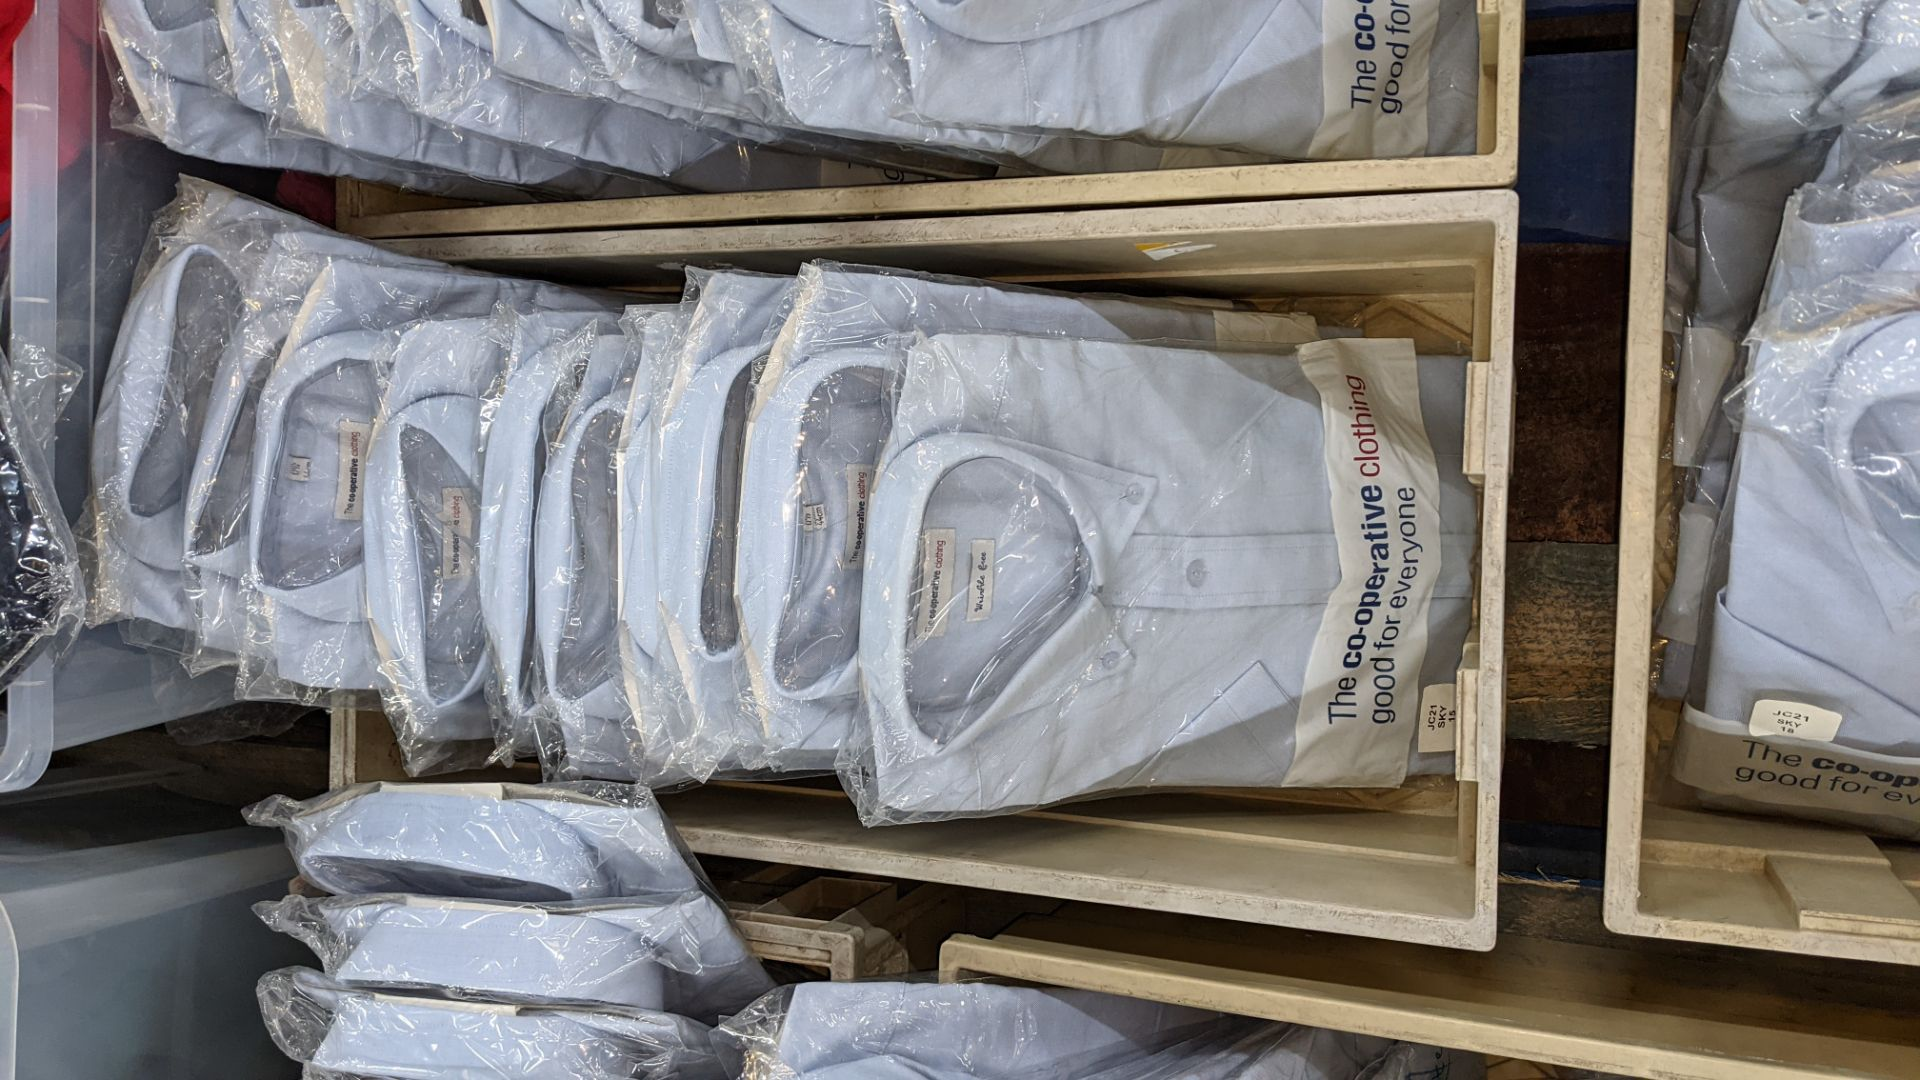 Approx 35 off blue short sleeve shirts with button down collars - the contents of 3 crates. NB cra - Image 4 of 5